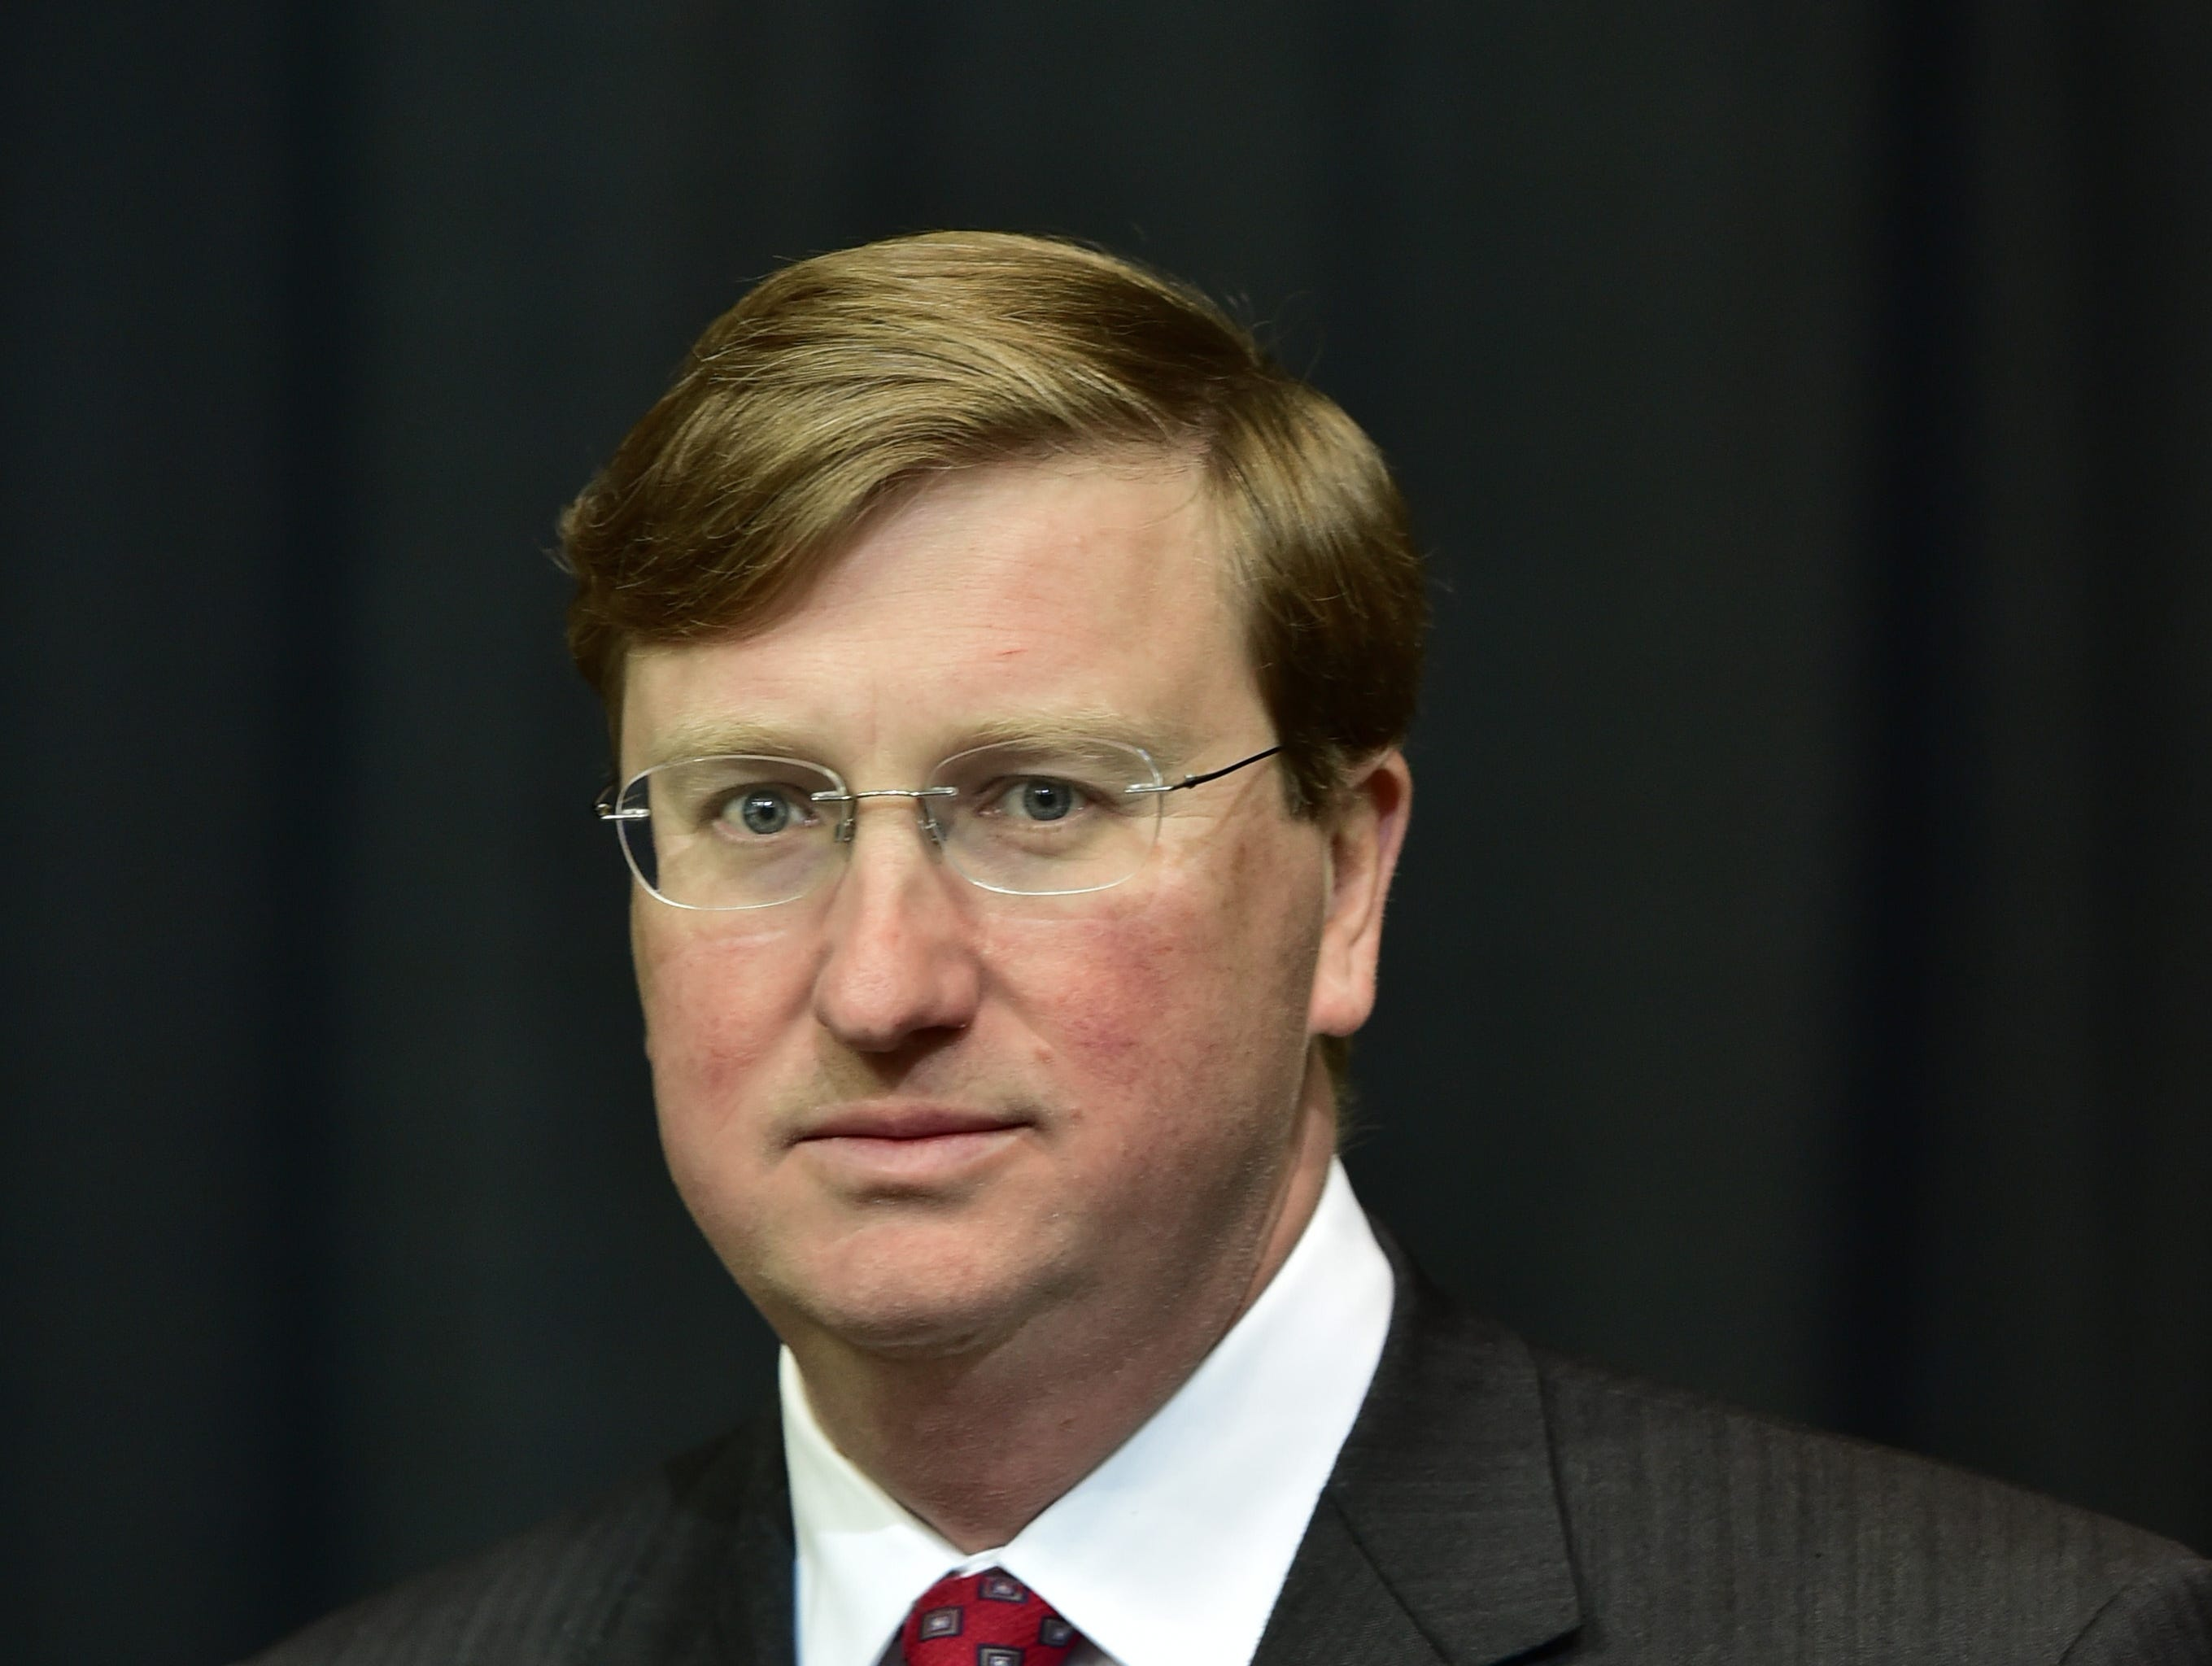 Mississippi Lt. Gov. Tate Reeves pauses before entering the stage to speak at the 'MAGA Christmas' rally at Biloxi's Mississippi Coast Coliseum. The rally was held in support of incumbent U.S. Sen. Cindy Hyde-Smith the evening before a run off between Hyde-Smith and Mike Espy for senate. Monday, Nov. 26, 2018.